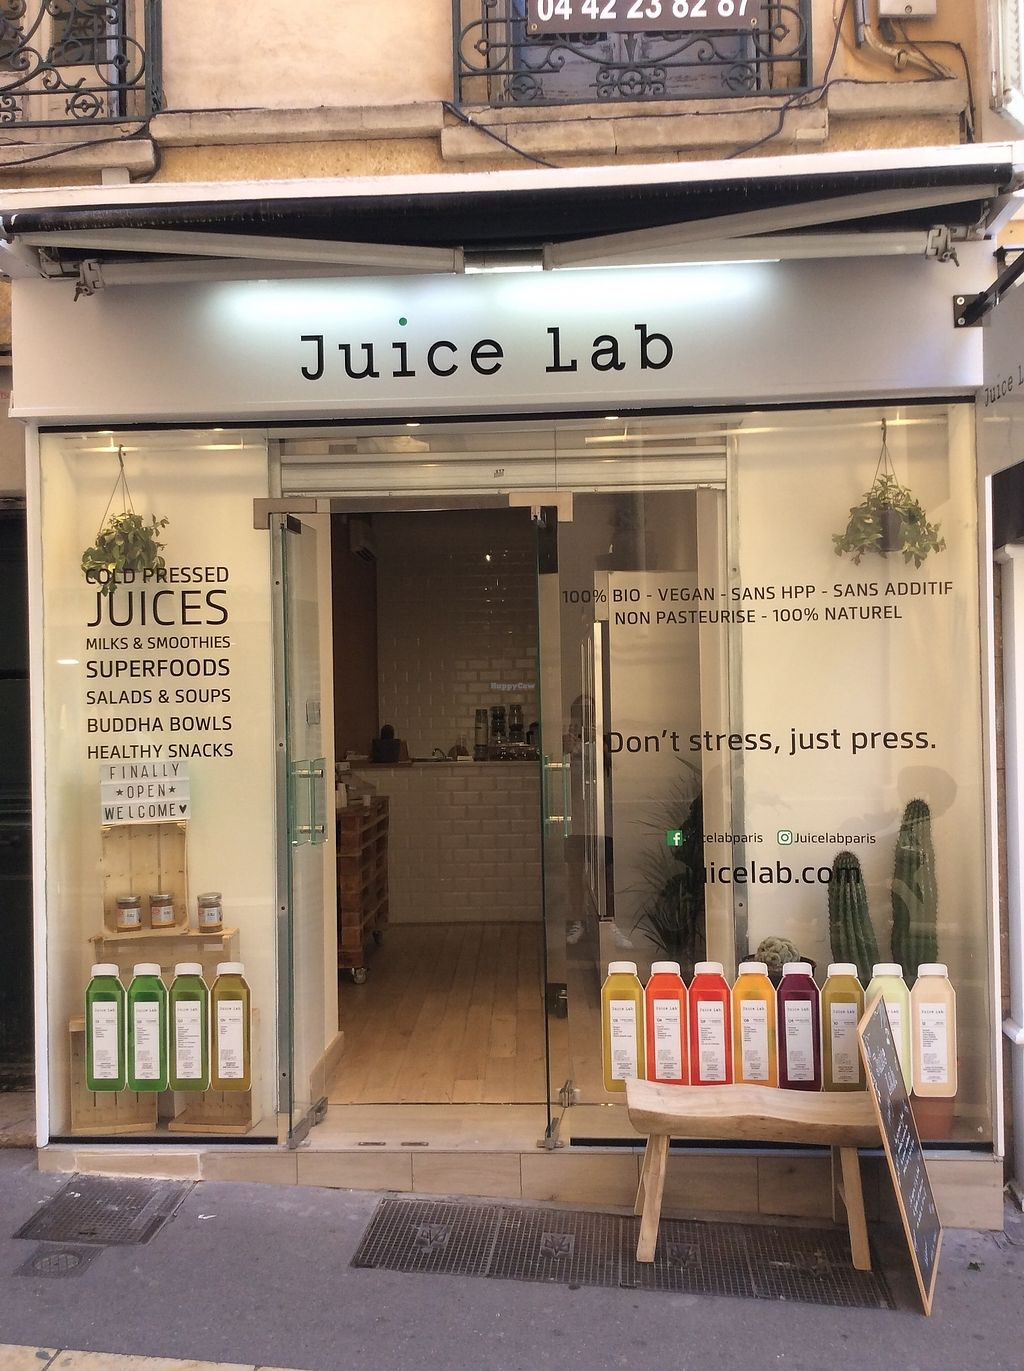 """Photo of Juice Lab   by <a href=""""/members/profile/BrieucSJBaron"""">BrieucSJBaron</a> <br/>New vegan spot <br/> July 7, 2017  - <a href='/contact/abuse/image/93669/277412'>Report</a>"""